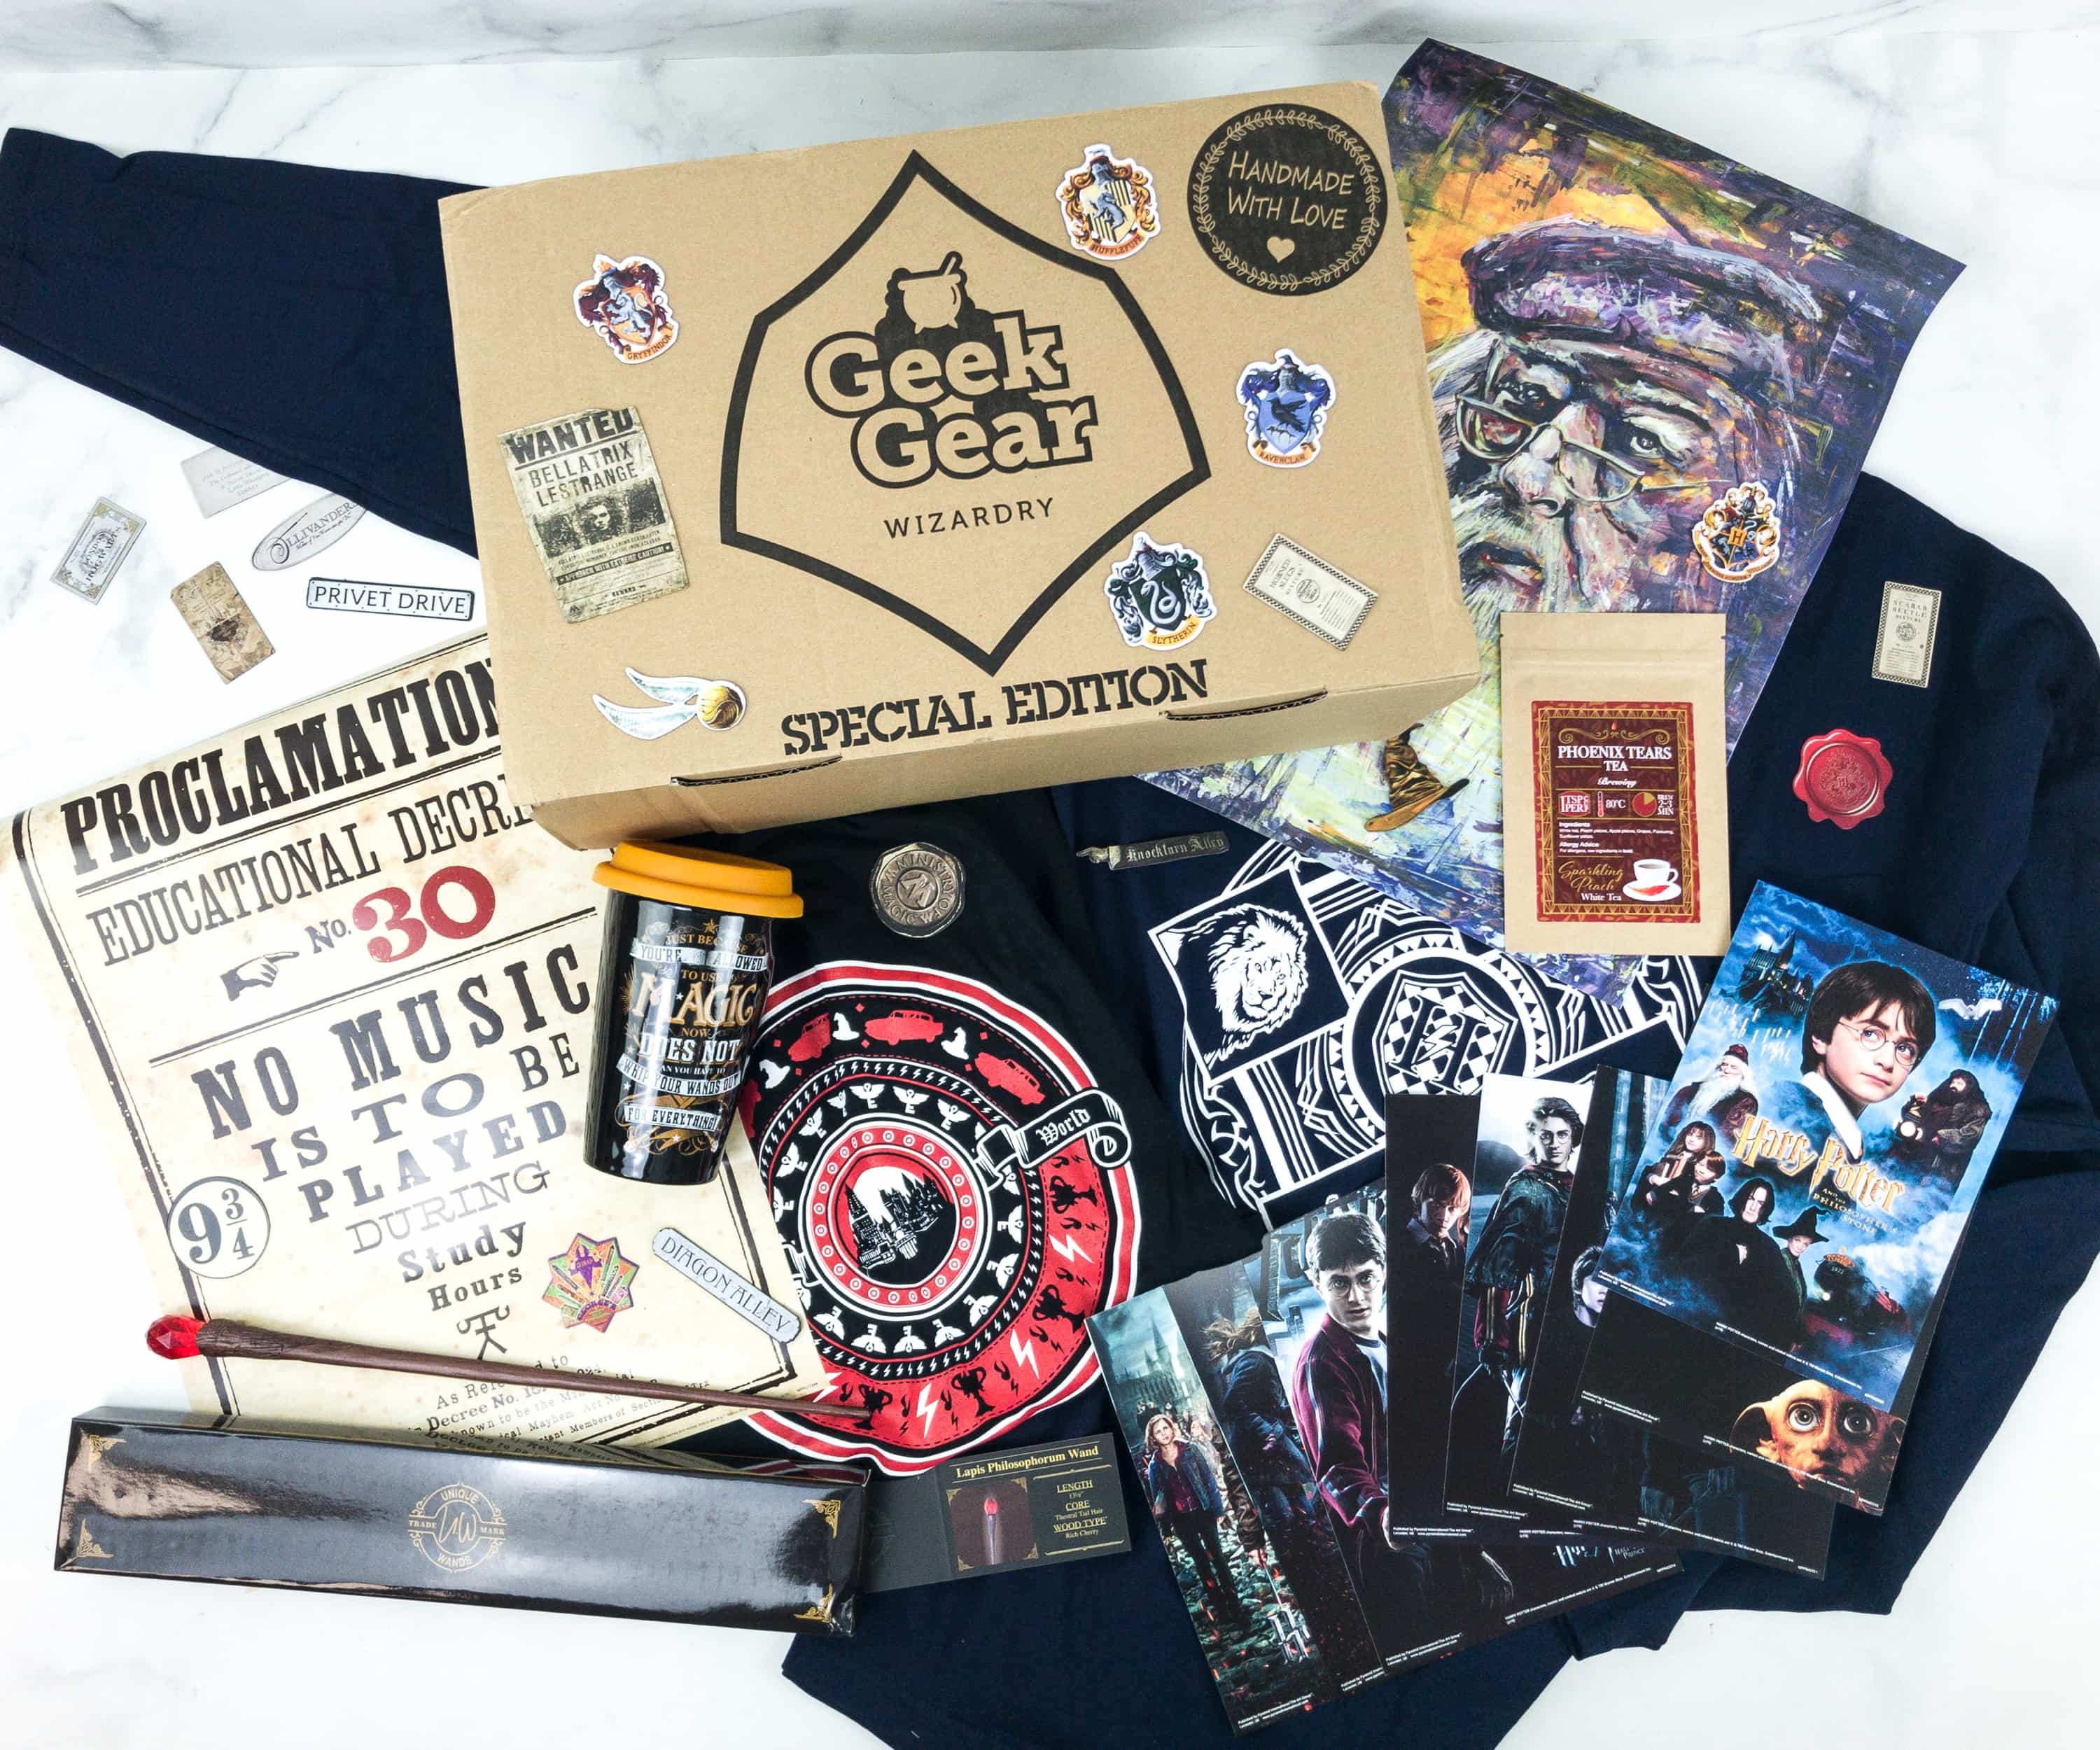 Geek Gear World of Wizardry June 2019 Special Edition Box Review